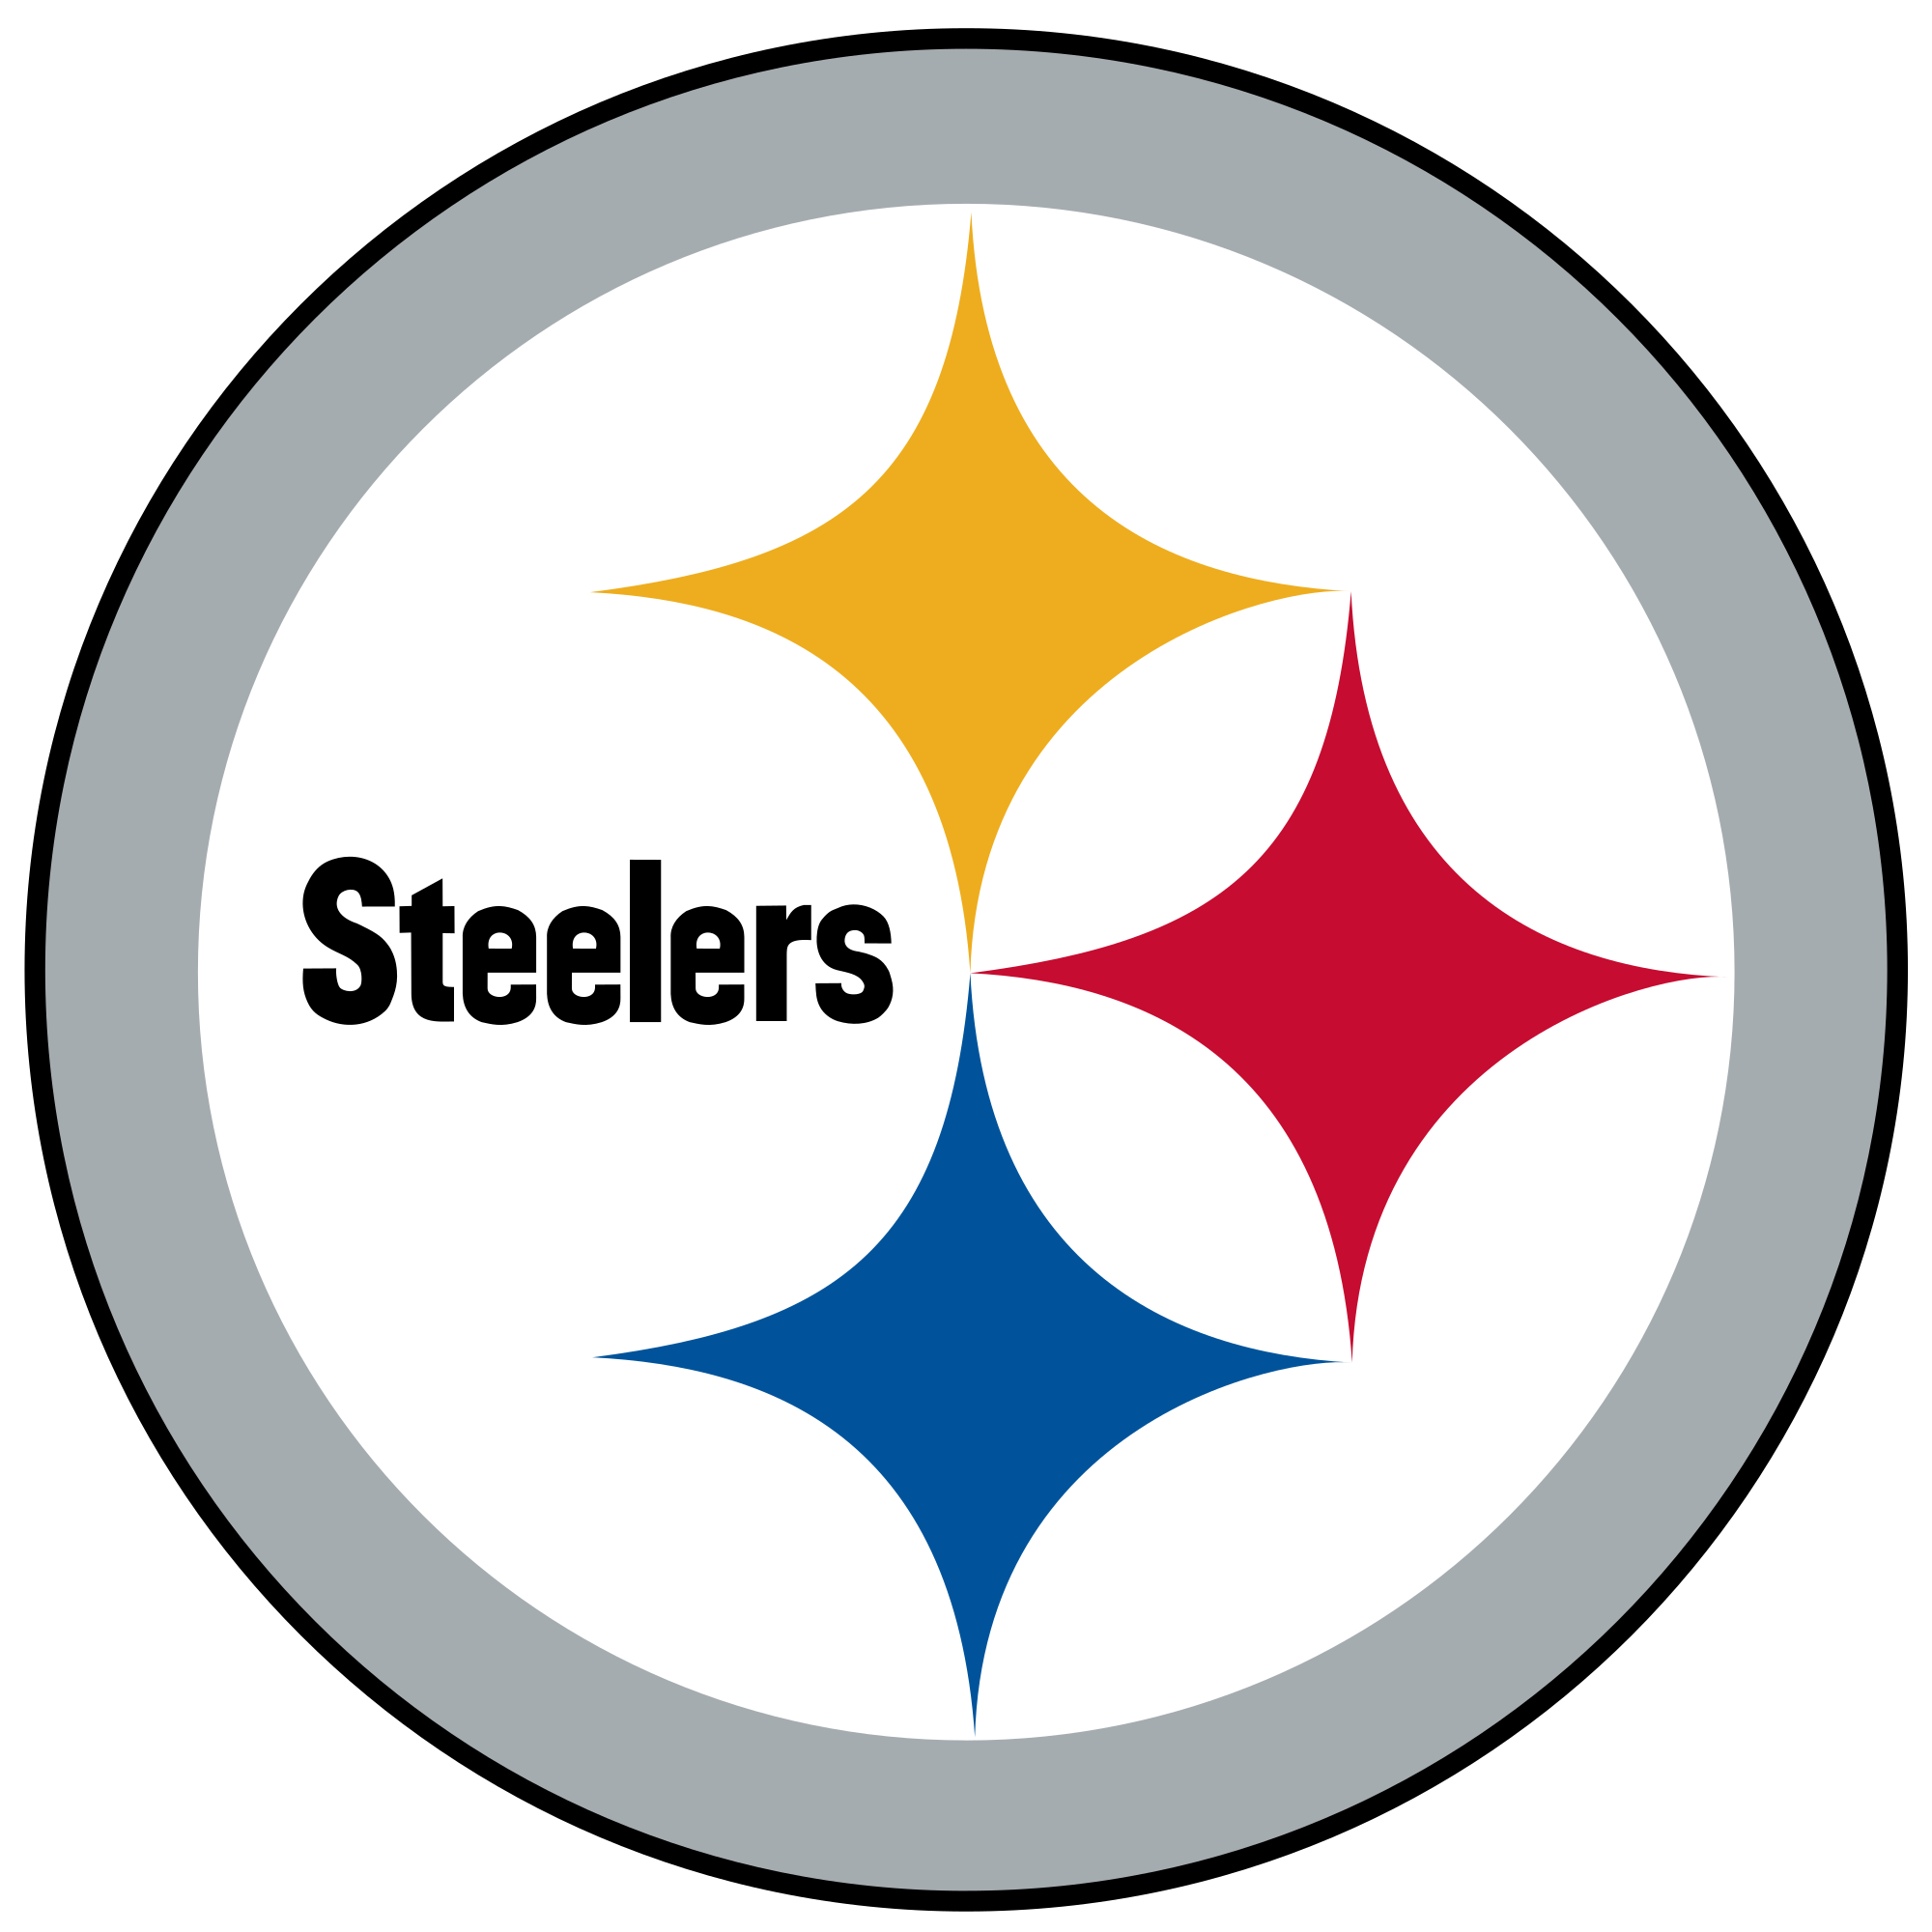 Football tailgating clipart picture royalty free Steelers | Tailgate Guys picture royalty free